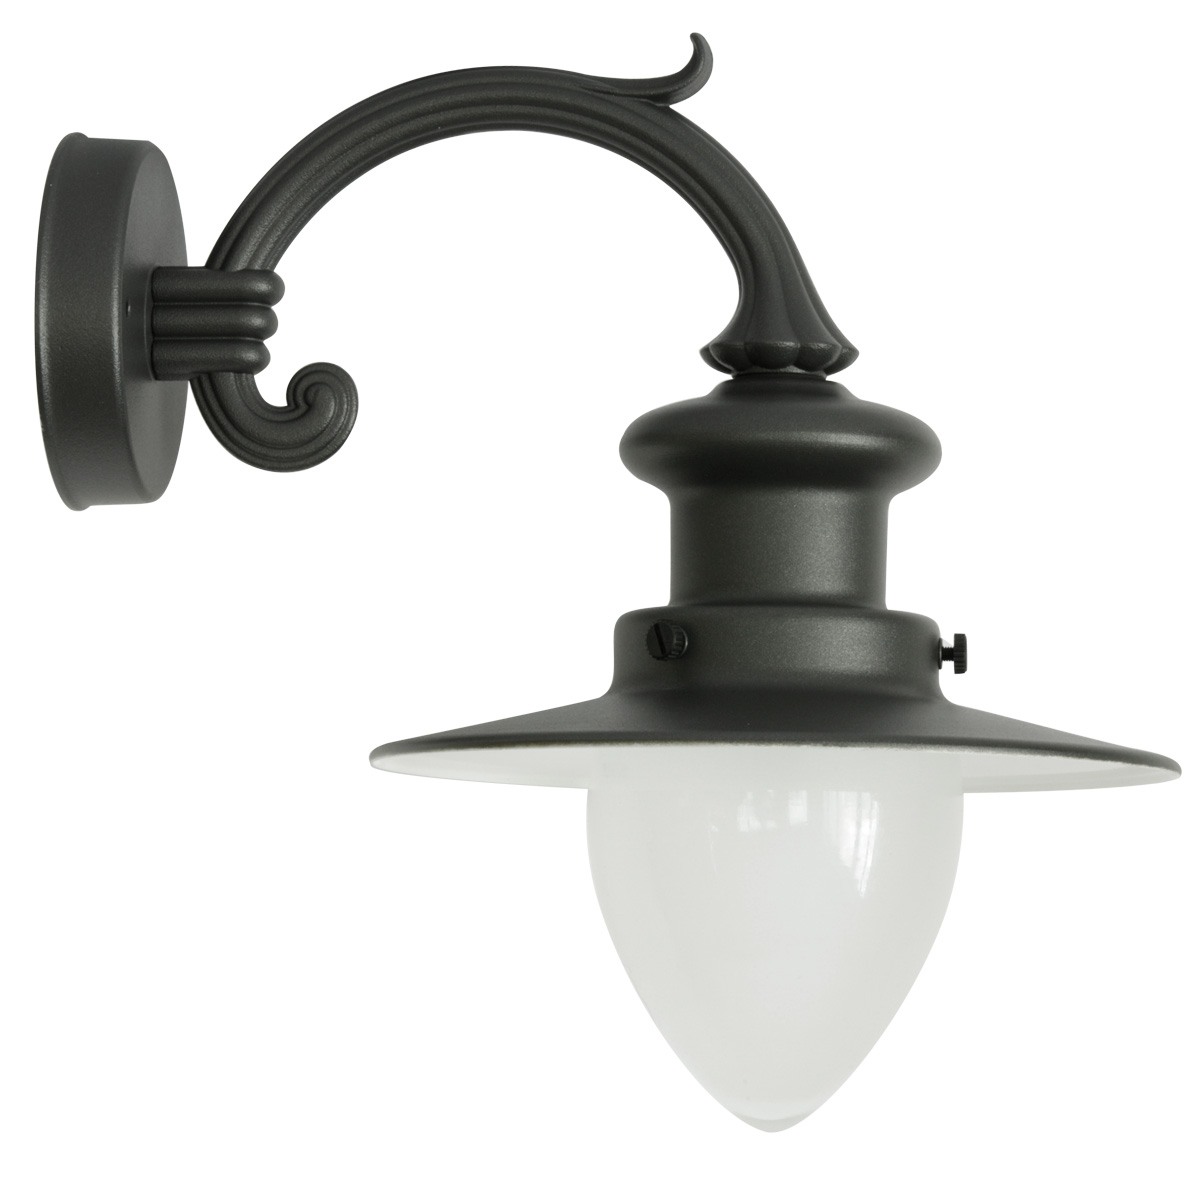 Kleine Wandlampe Factory-style Wall Light For Outdoor Use With Pointed Glass - Terra Lumi